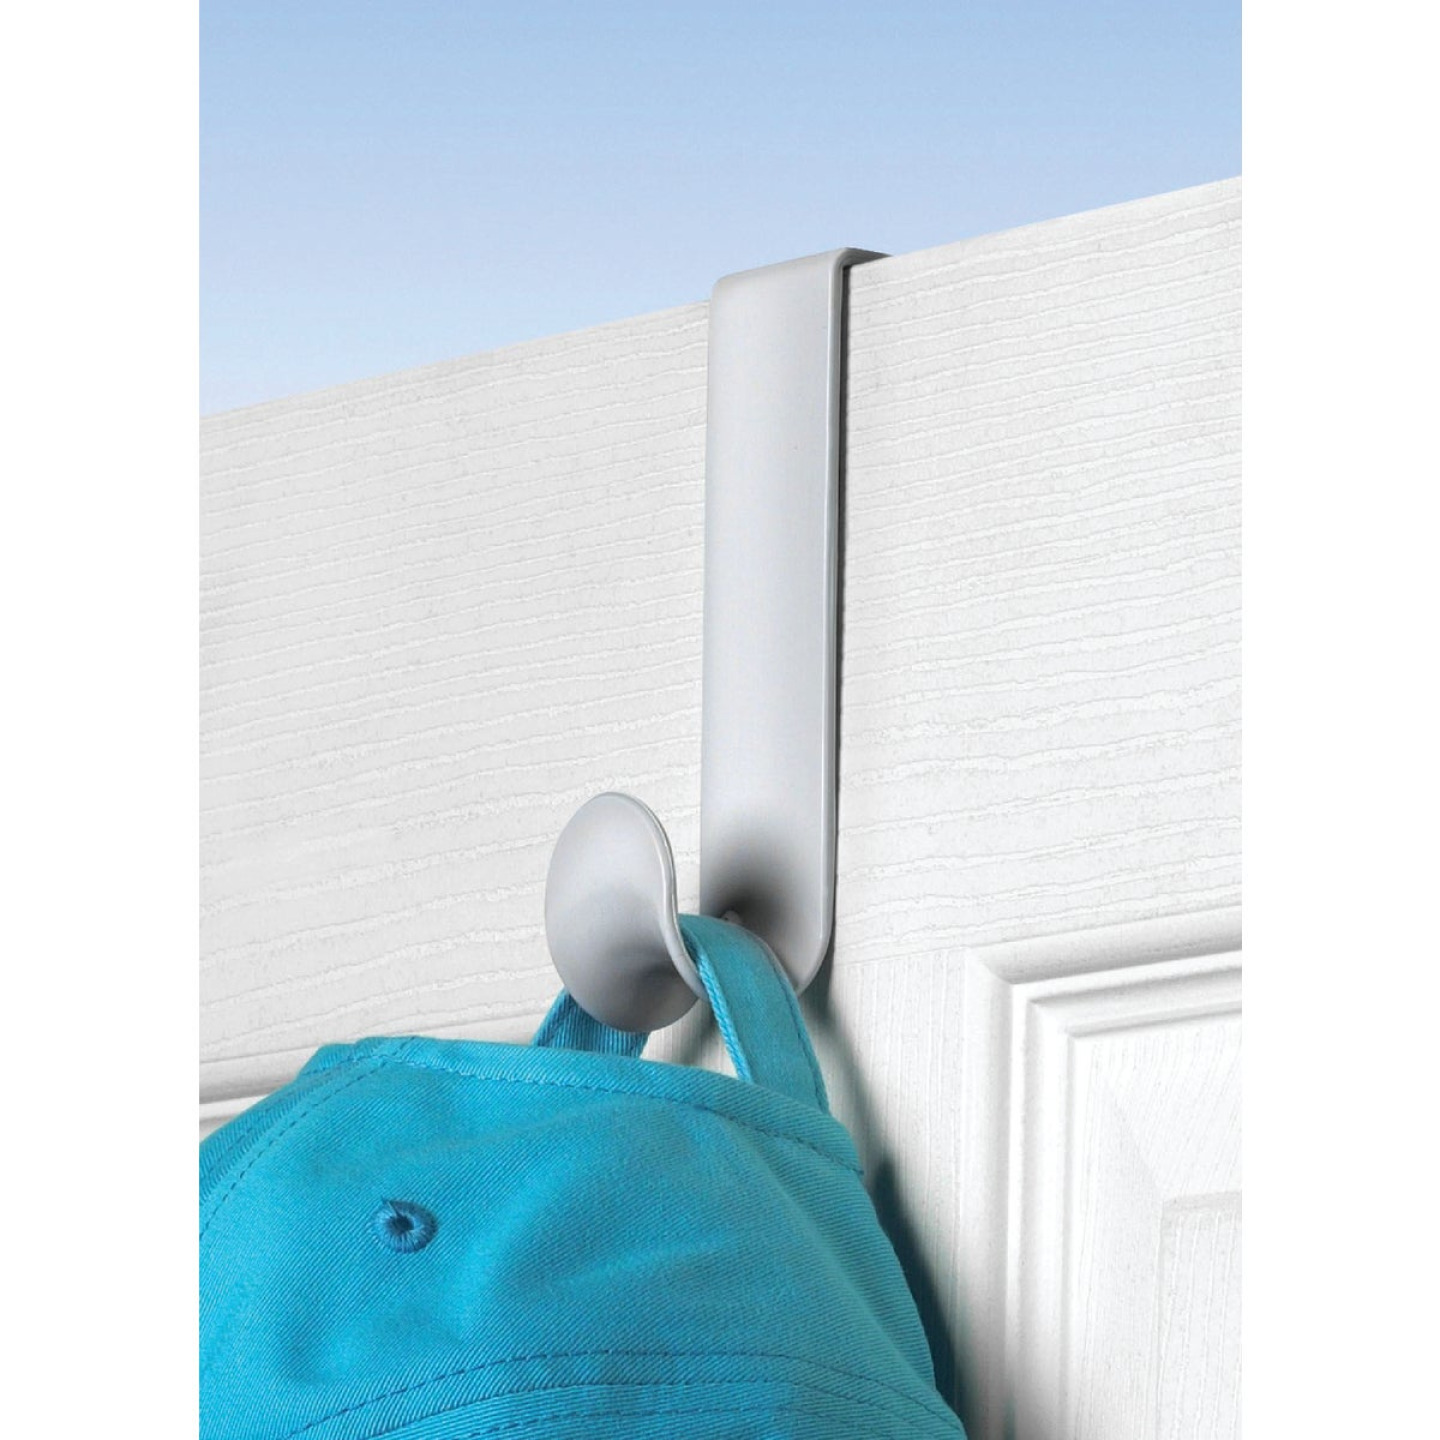 Spectrum White Plastic Over-The-Door Hook 4-3/4 In. Image 1